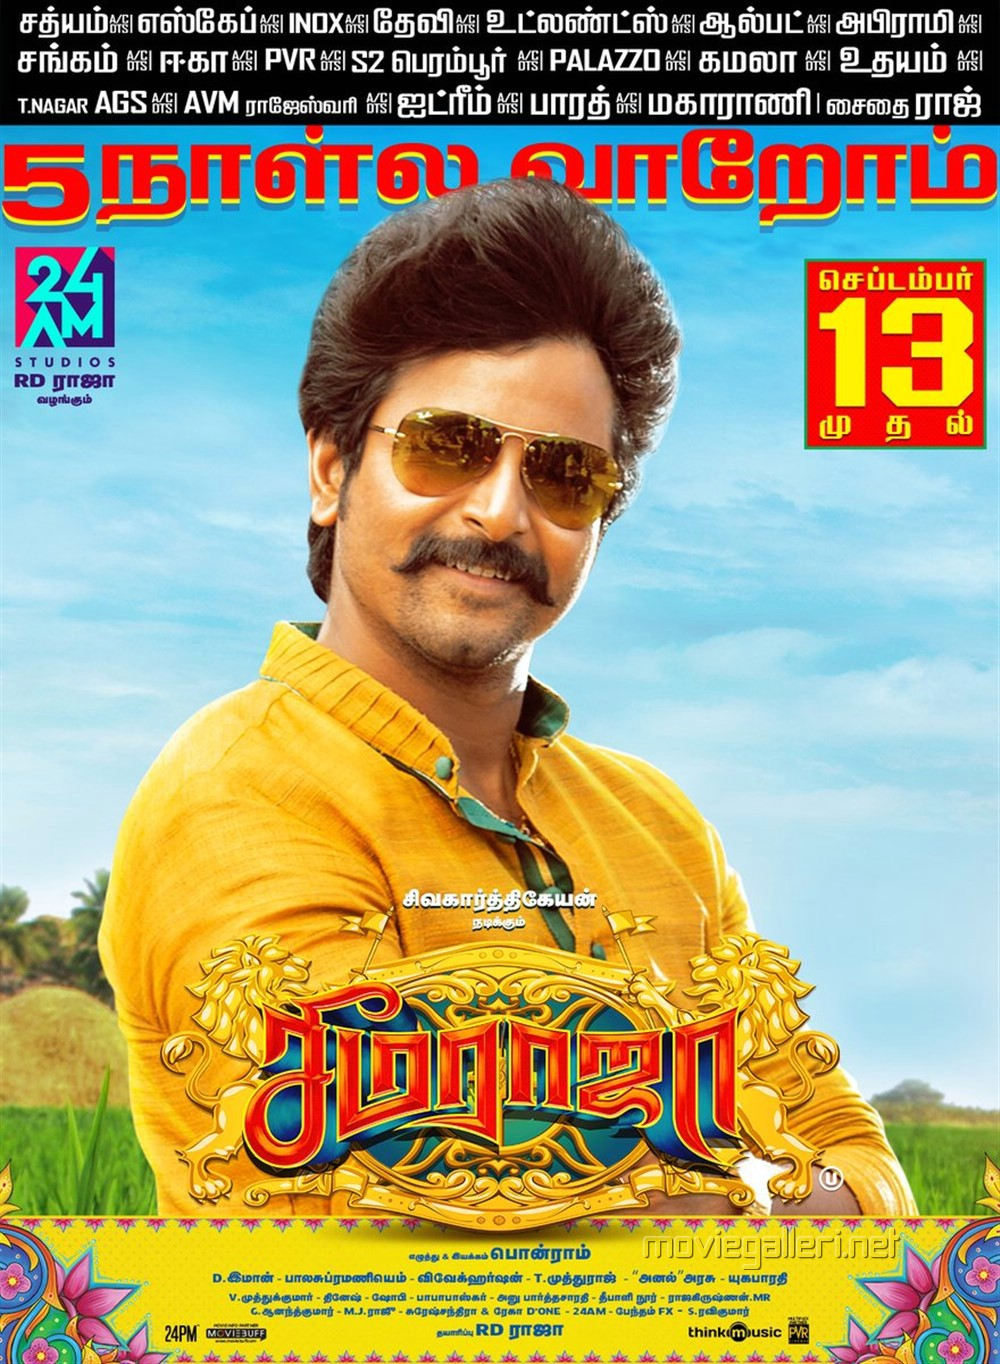 Sivakarthikeyan Seema Raja Movie Release 5 Days To Go Poster